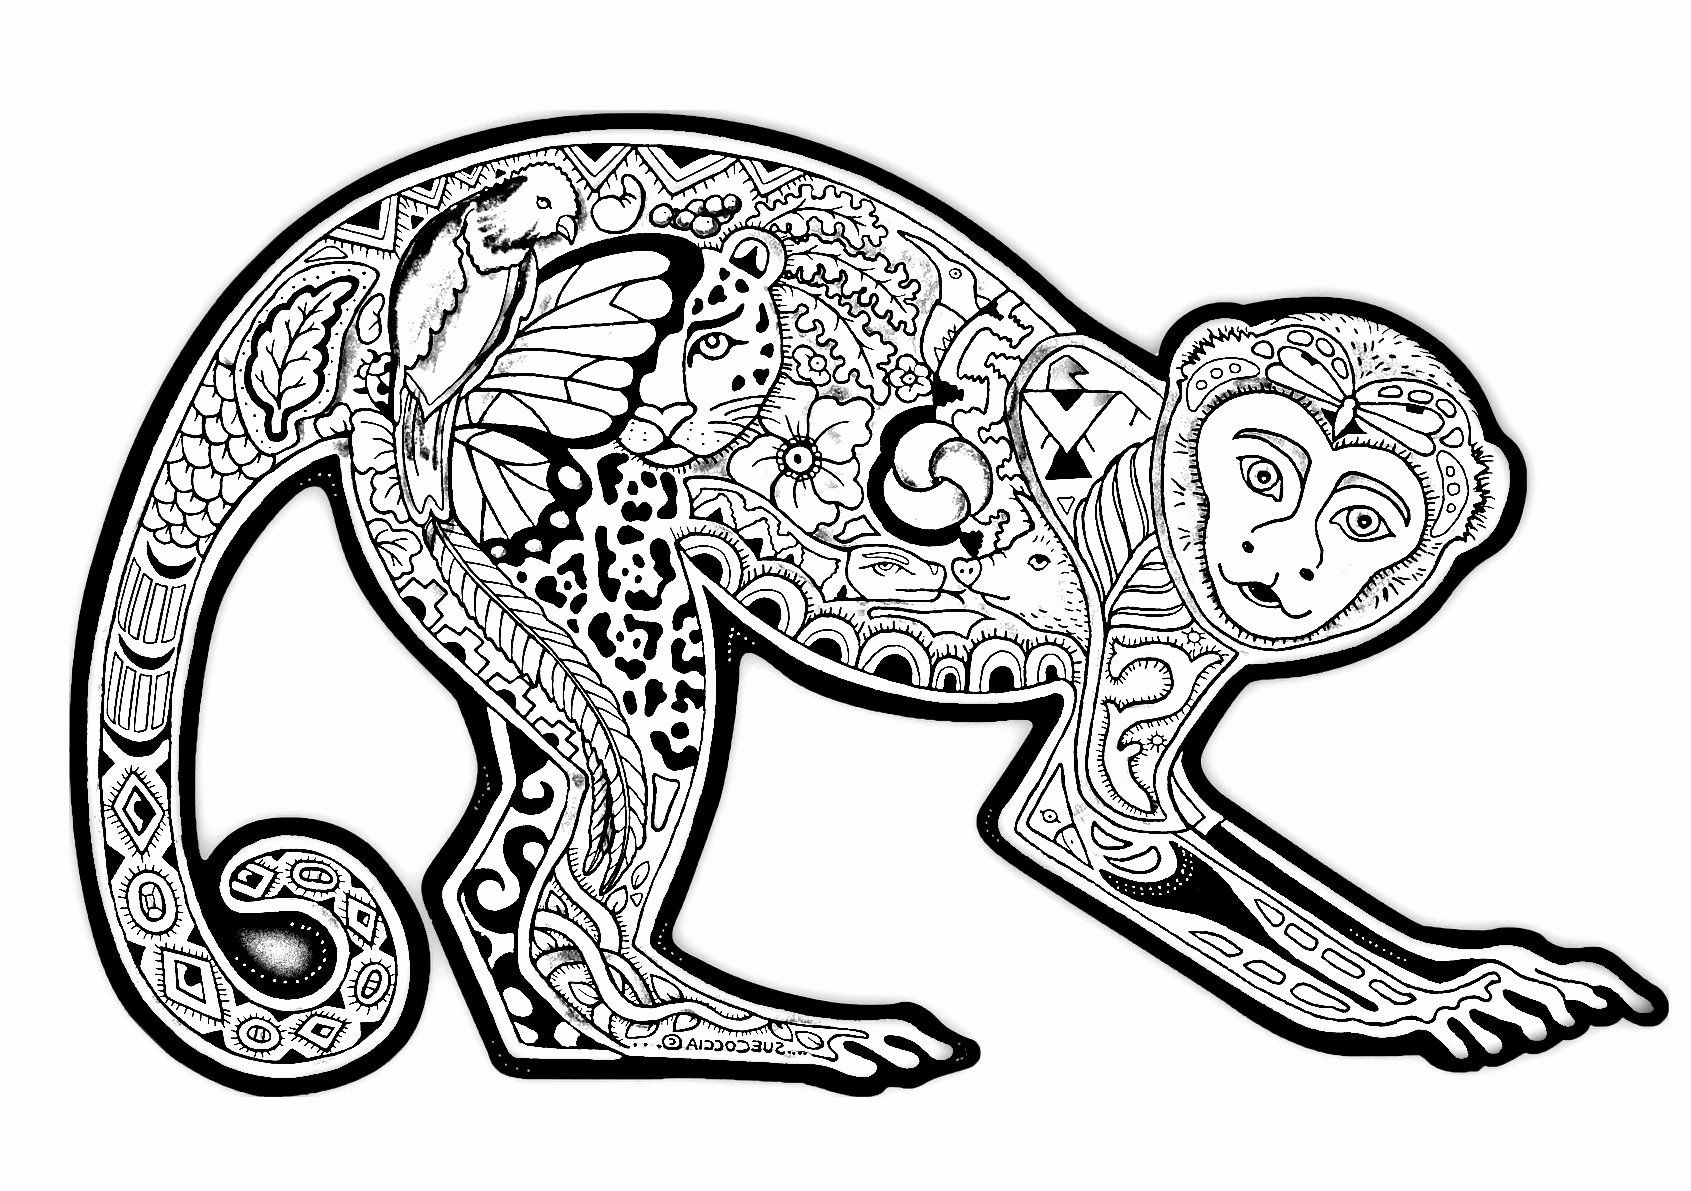 Zebra Zentangle Coloring Page Animal Coloring Pages Zebra Coloring Pages Horse Coloring Pages